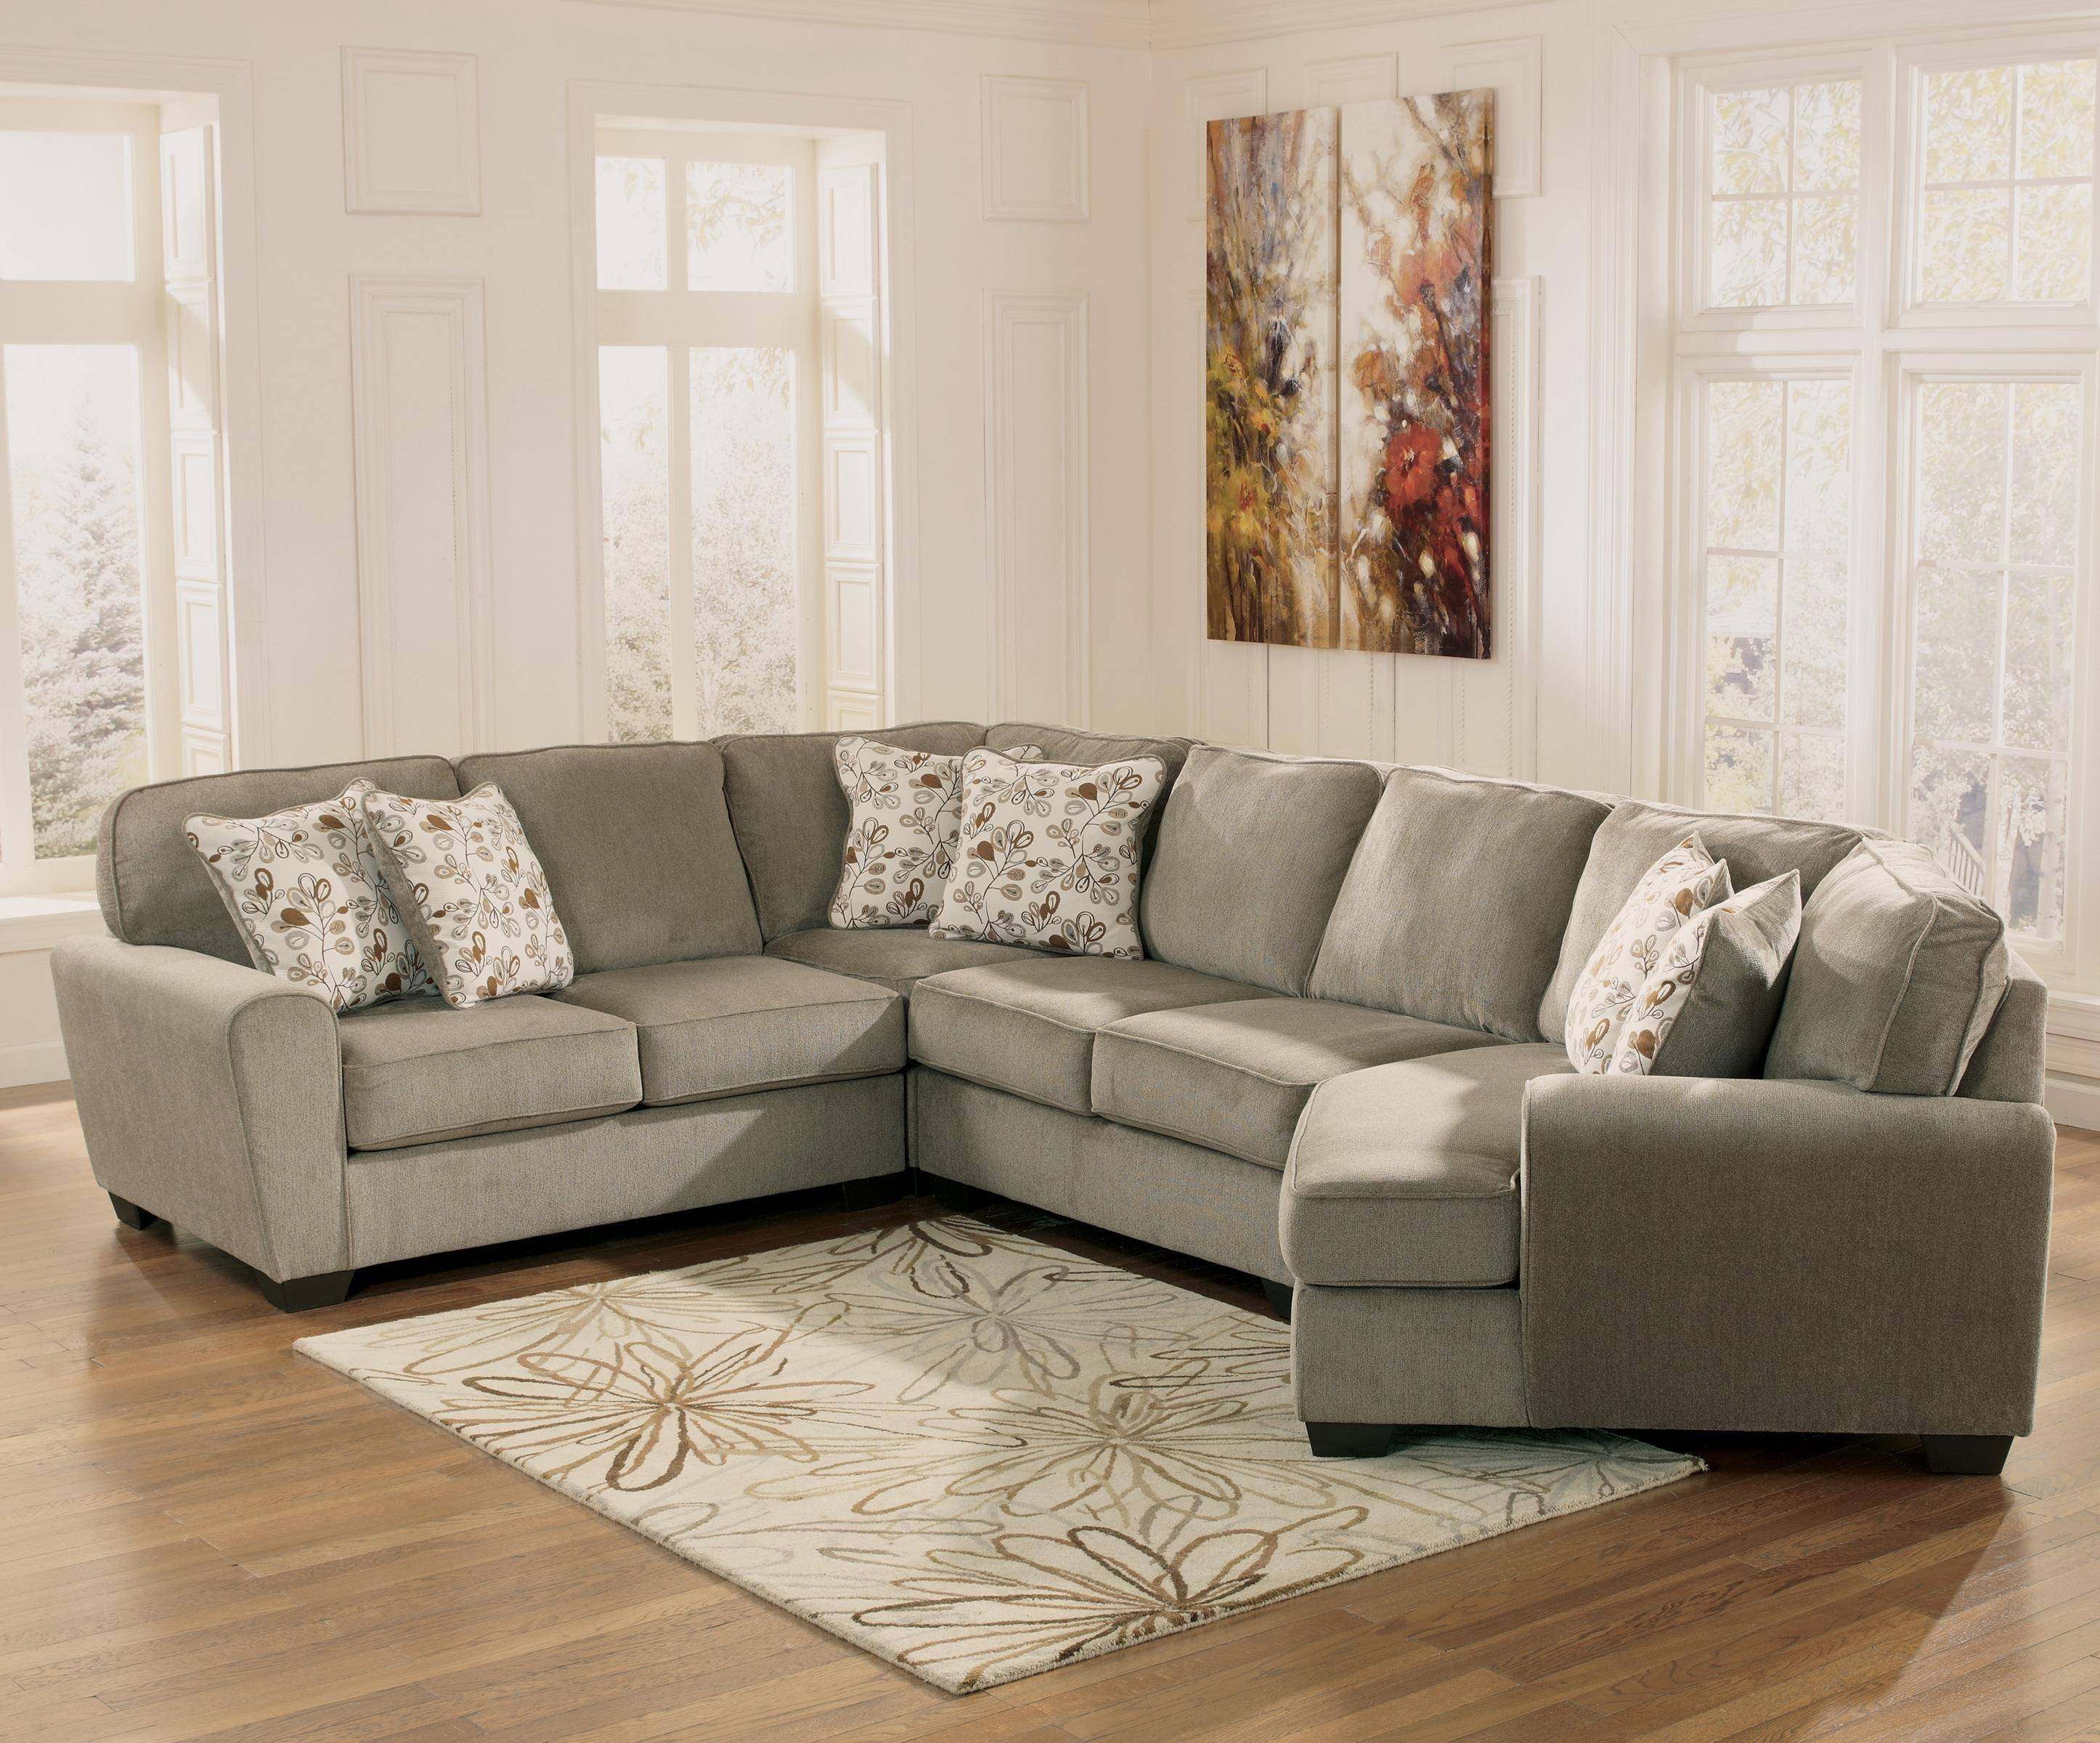 Patina 4-Piece Small Sectional With Right Cuddler - Rotmans - Sofa with Cuddler Sectional Sofa (Image 19 of 30)